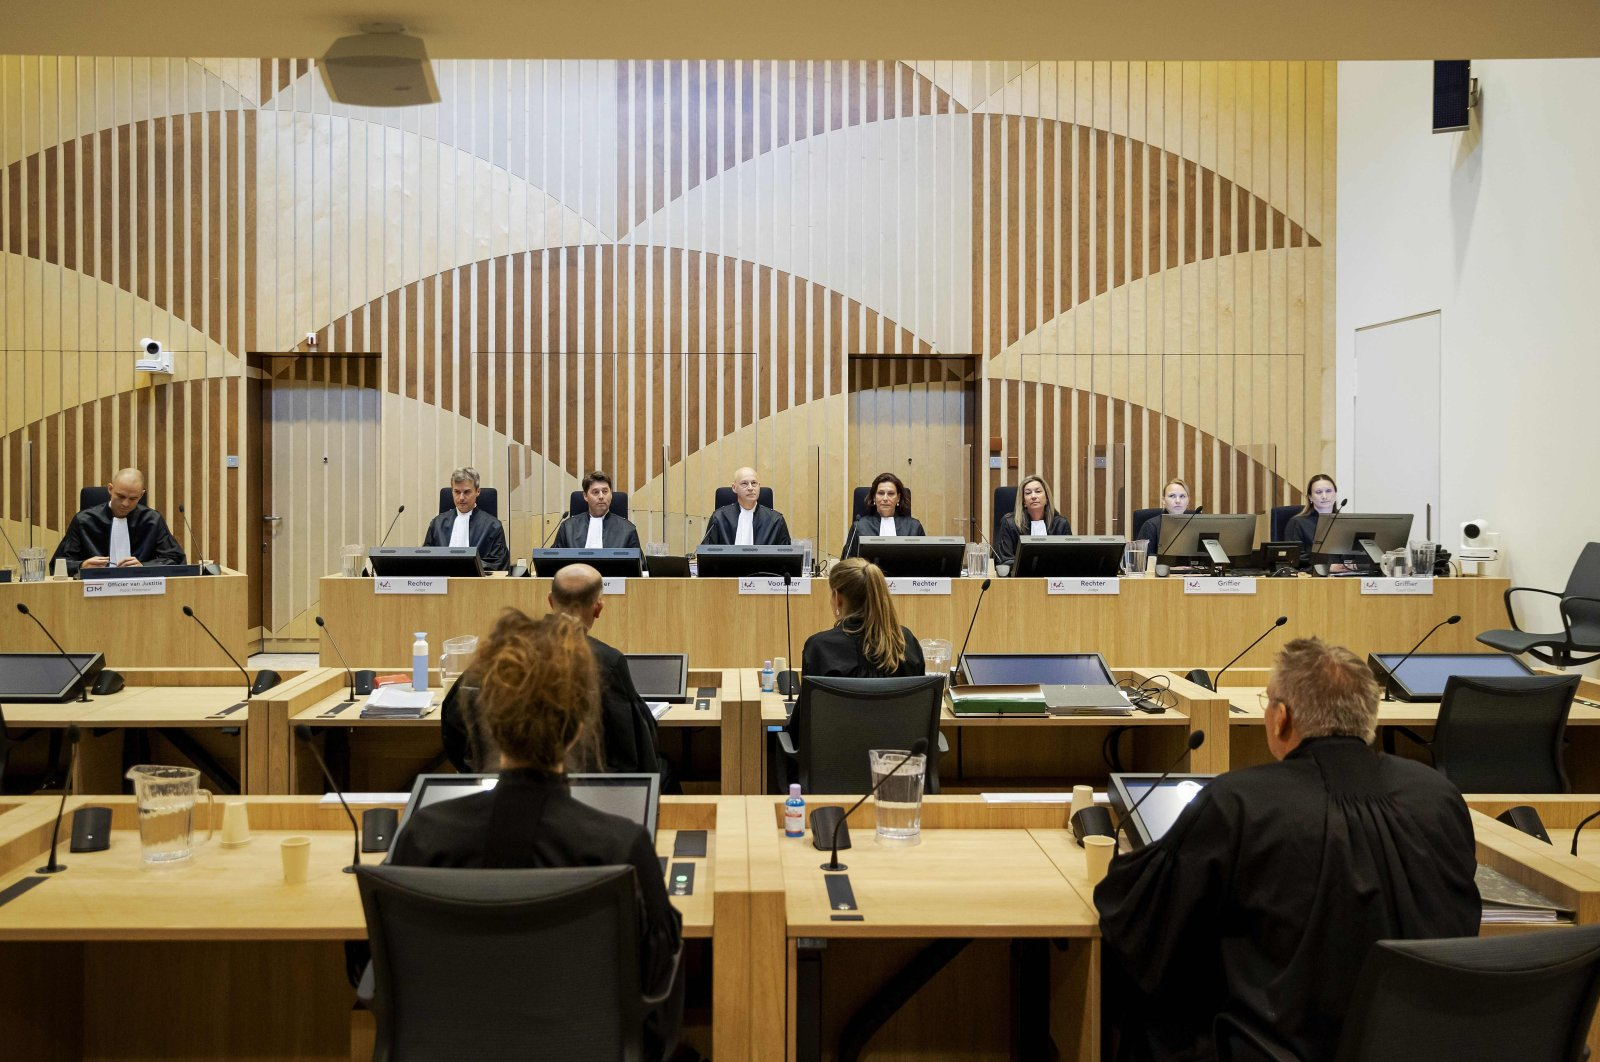 Judges and lawyers attend the third session of the sampling process surrounding the downing of flight MH17 at the Schiphol Judicial Complex, Badhoevedorp, June 8, 2020. (AFP Photo)